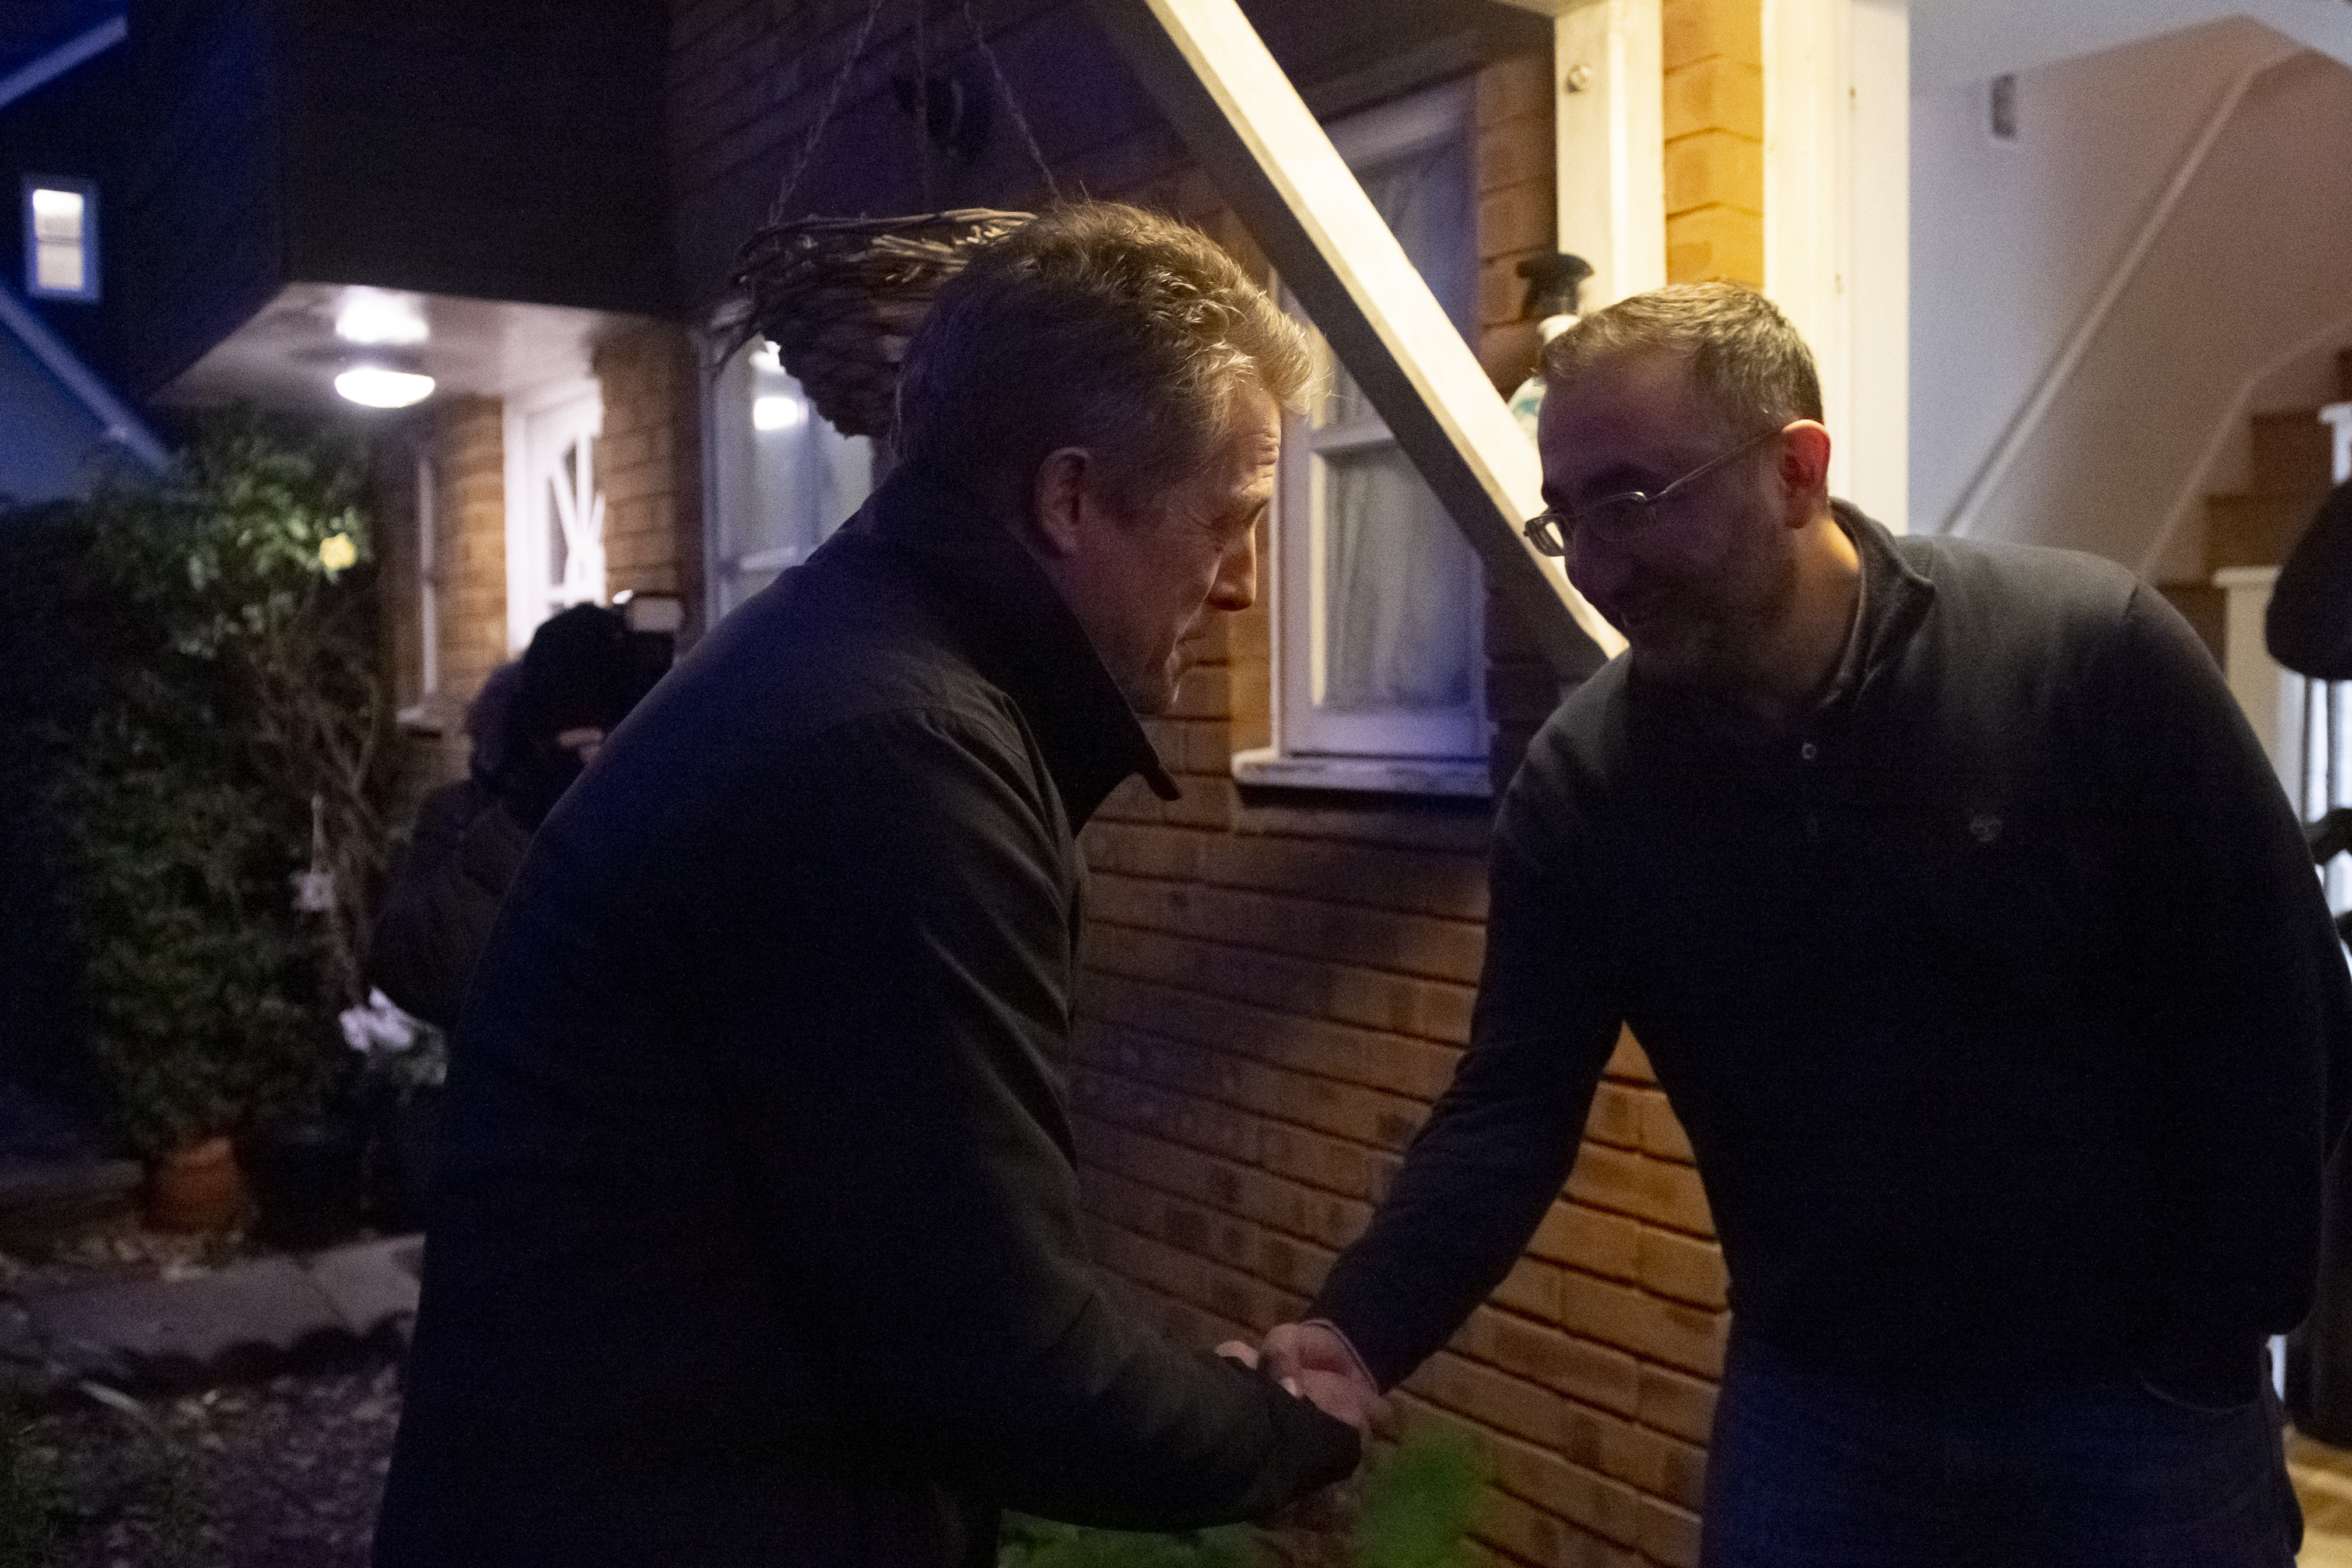 Hugh Grant canvassing for the Liberal Democrat's party in Finchley while on the General Election campaign trail.